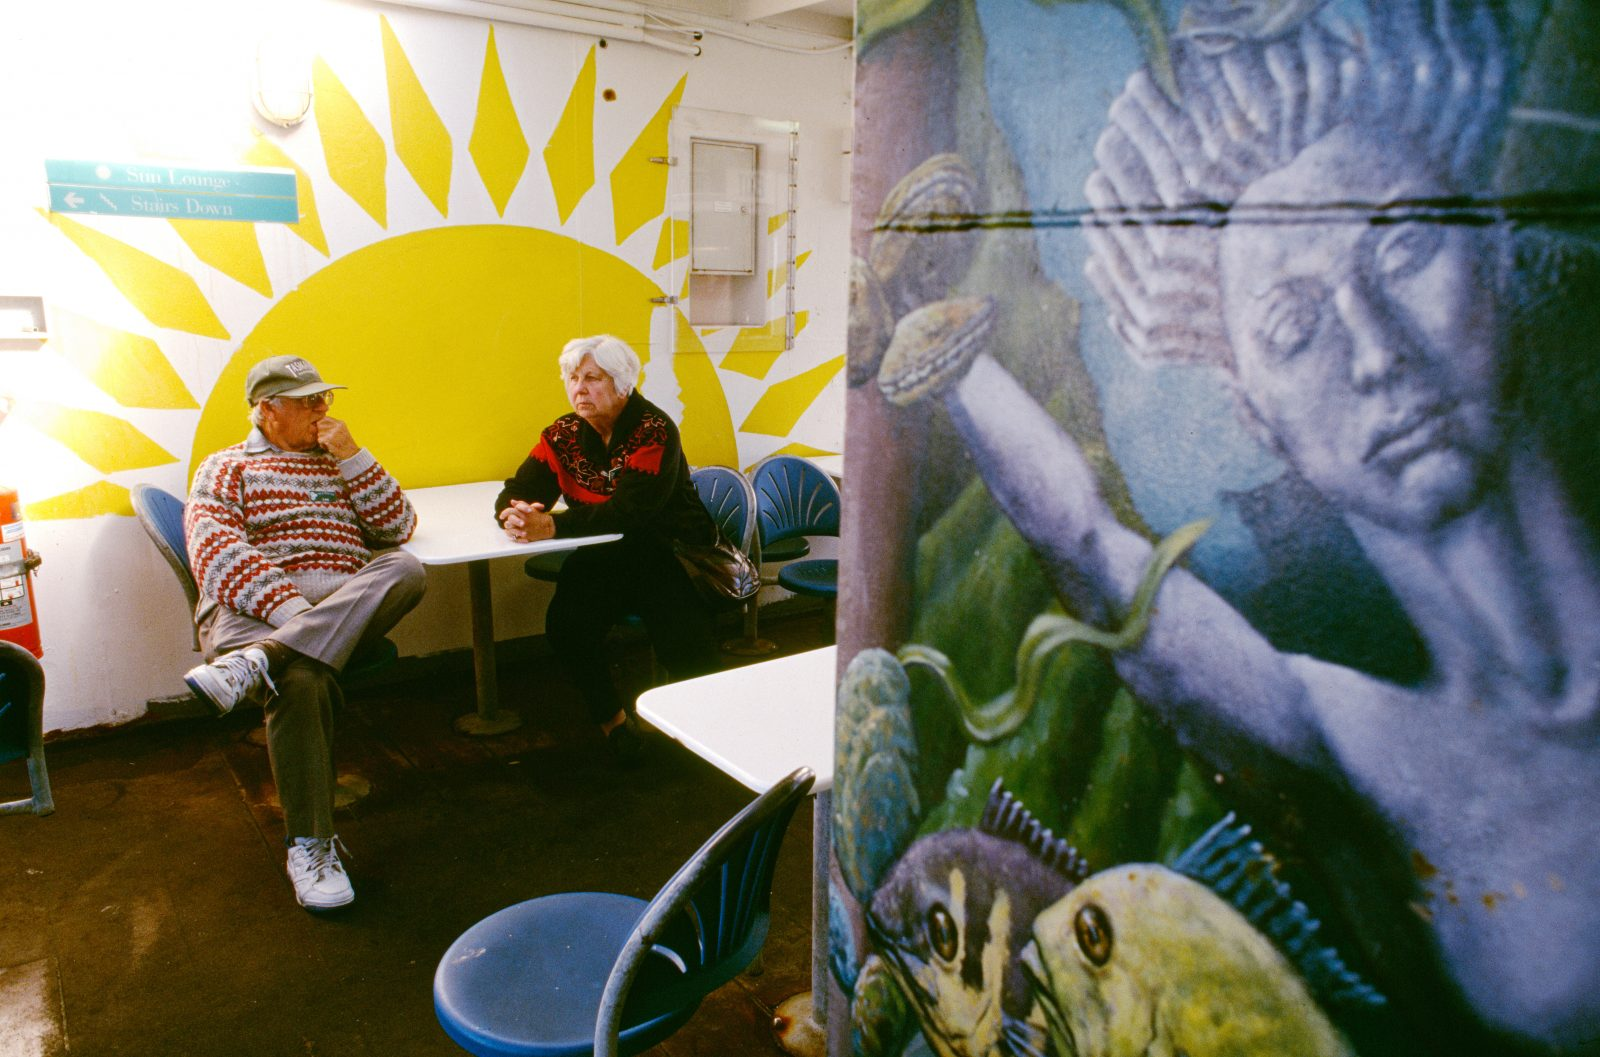 Lest passengers get too cosy in the Sun Lounge of the interisland ferry Aratika, a mural reminds them of the attractions of Davy Jones' locker not far below. More than a million passengers are carried across the Strait each year on the ferries' 5000-plus crossings.